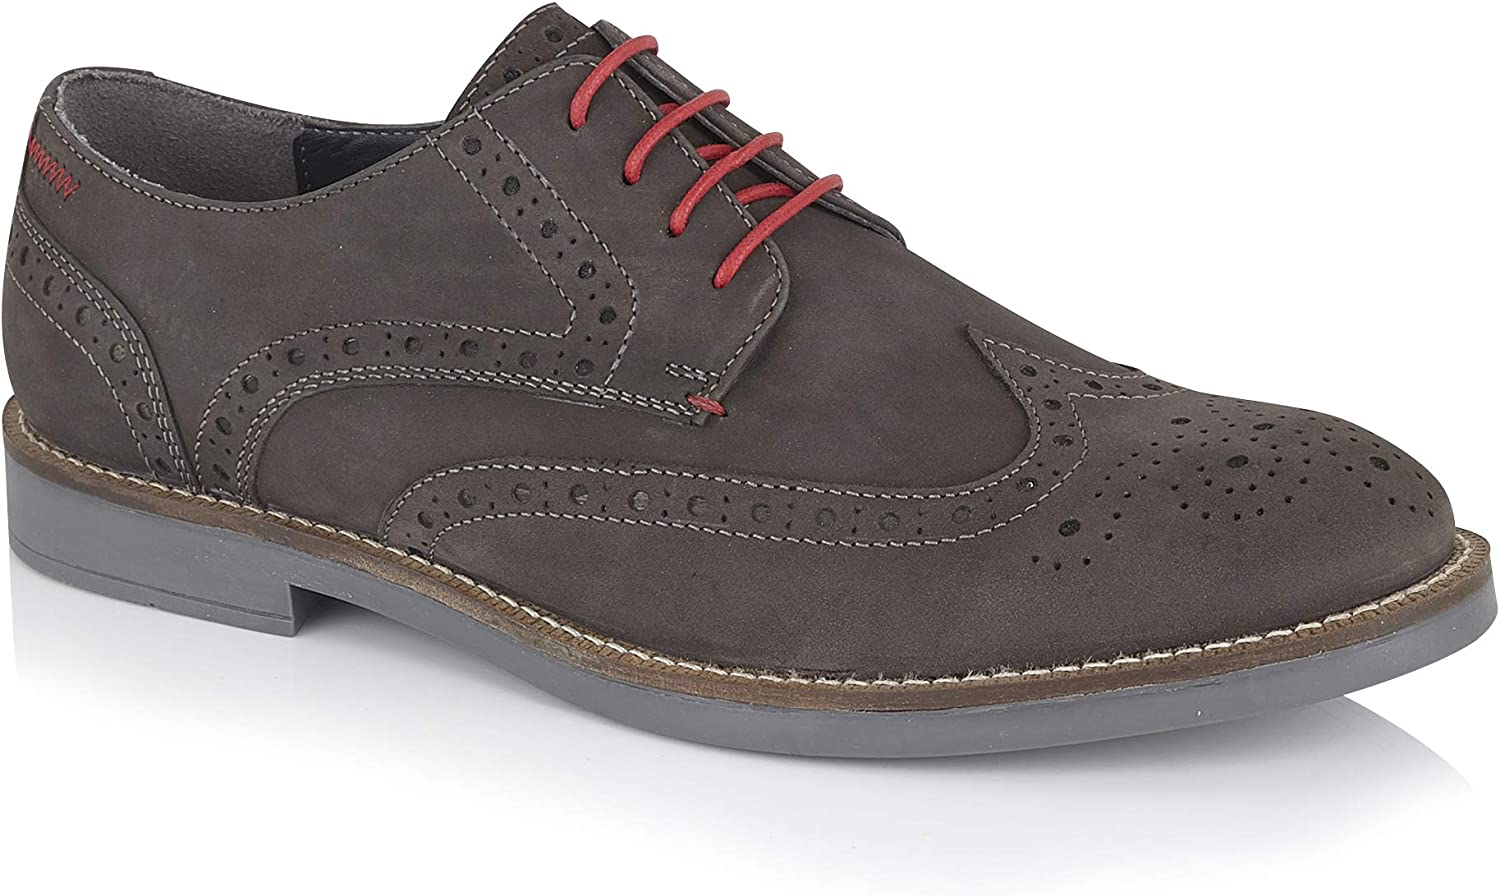 Silver Street Kipling Mens Casual Leather Grey Lace up Durable Brogue Derby Gibson shoes in Sizes 7-12